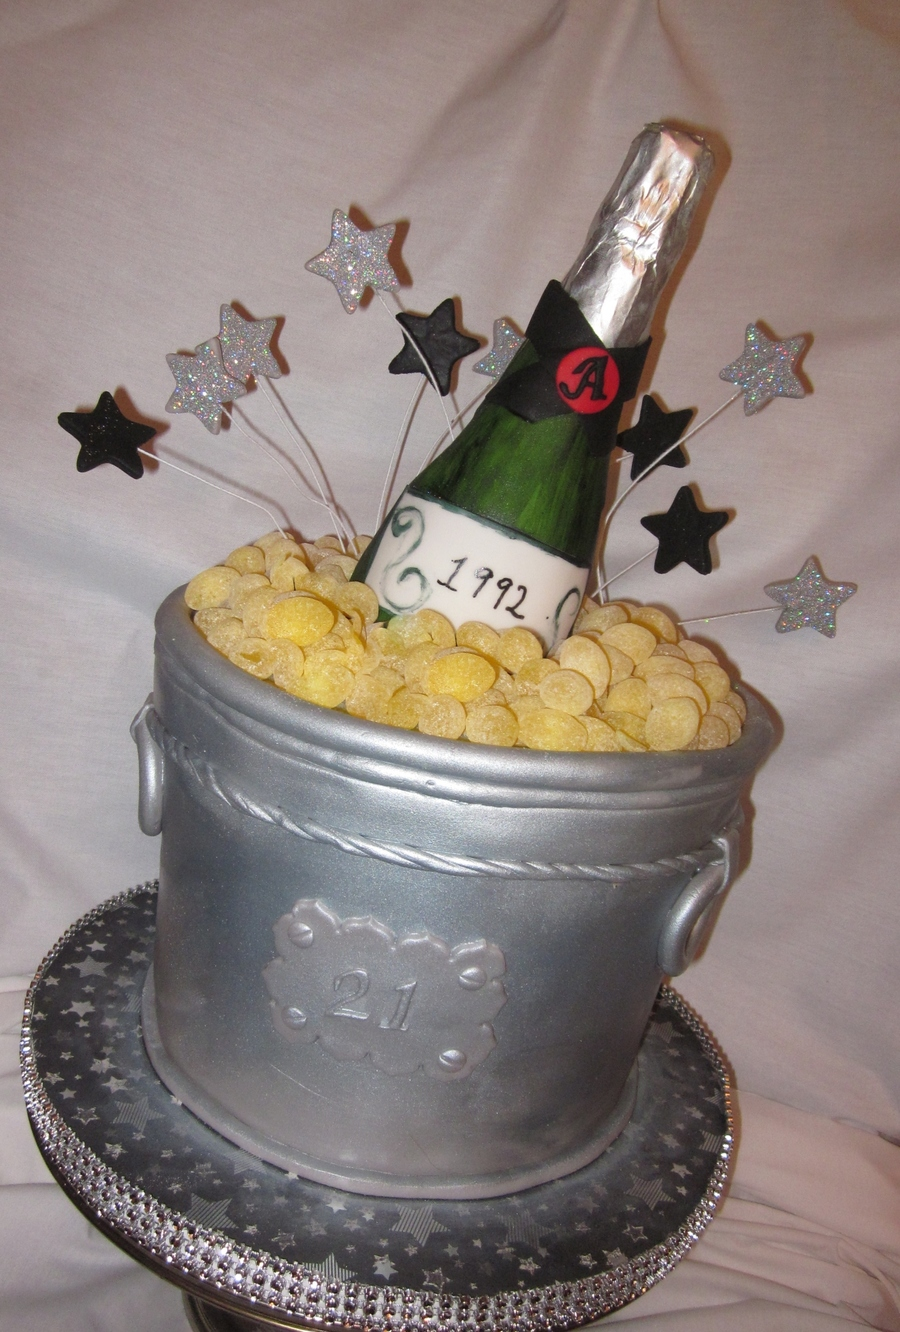 21St Birthday Cake Ice Bucket Is The Champagne Bottle Made From Chocolate Cubes